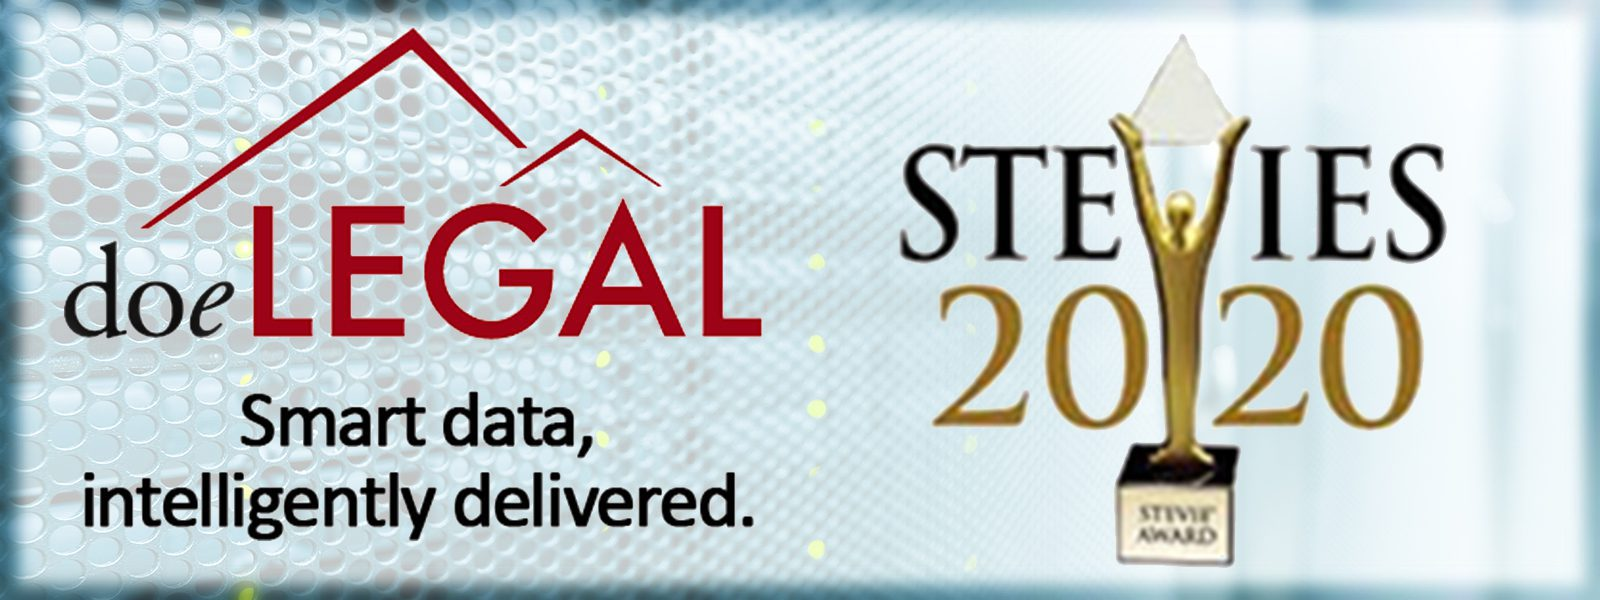 doeLEGAL-Stevie-Award-2020-blog